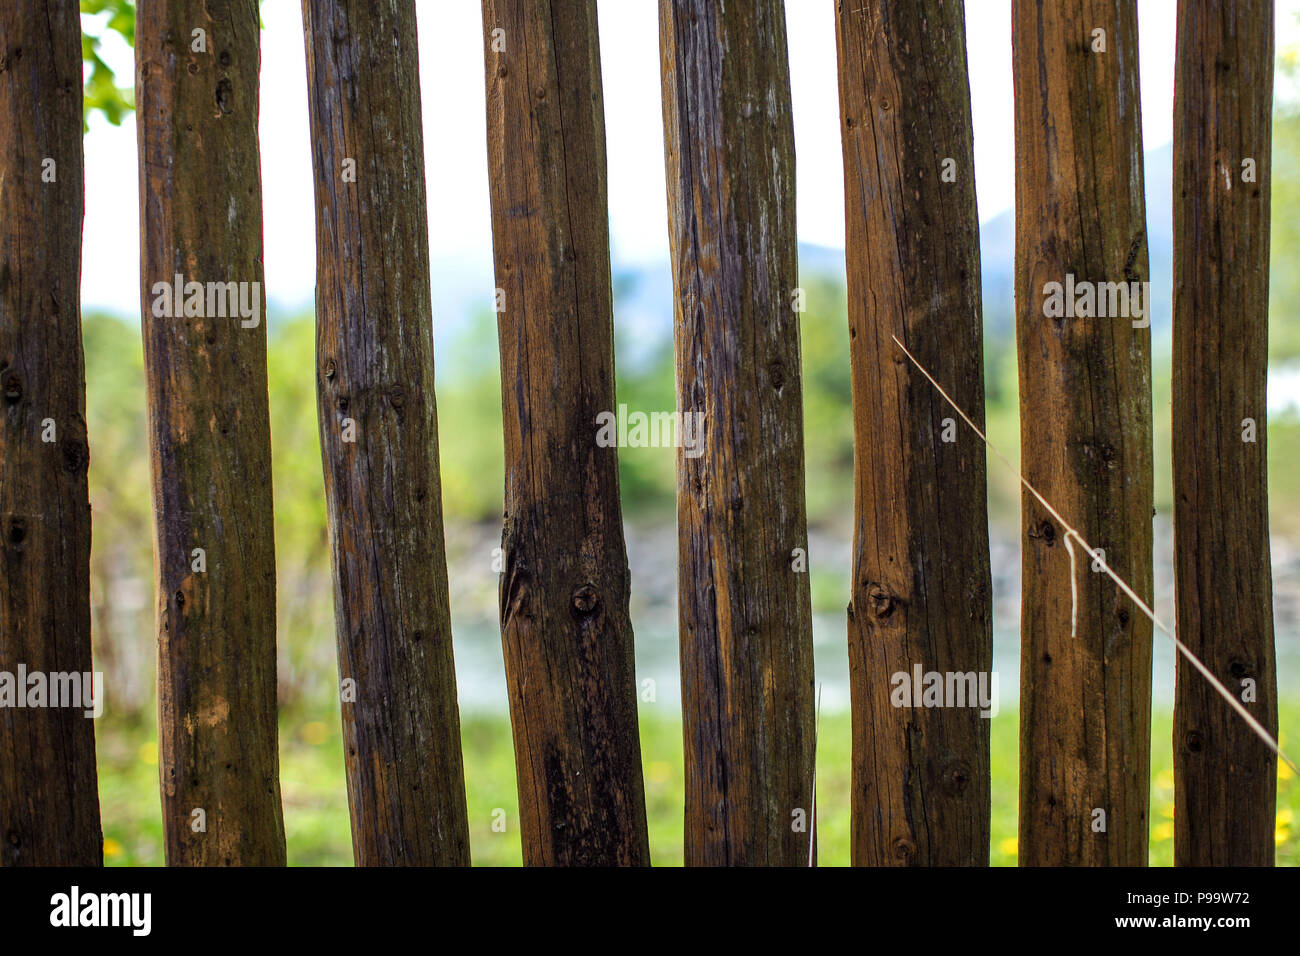 Close up photo - old wooden fence posts poles, with blurred spring country and river in background. - Stock Image